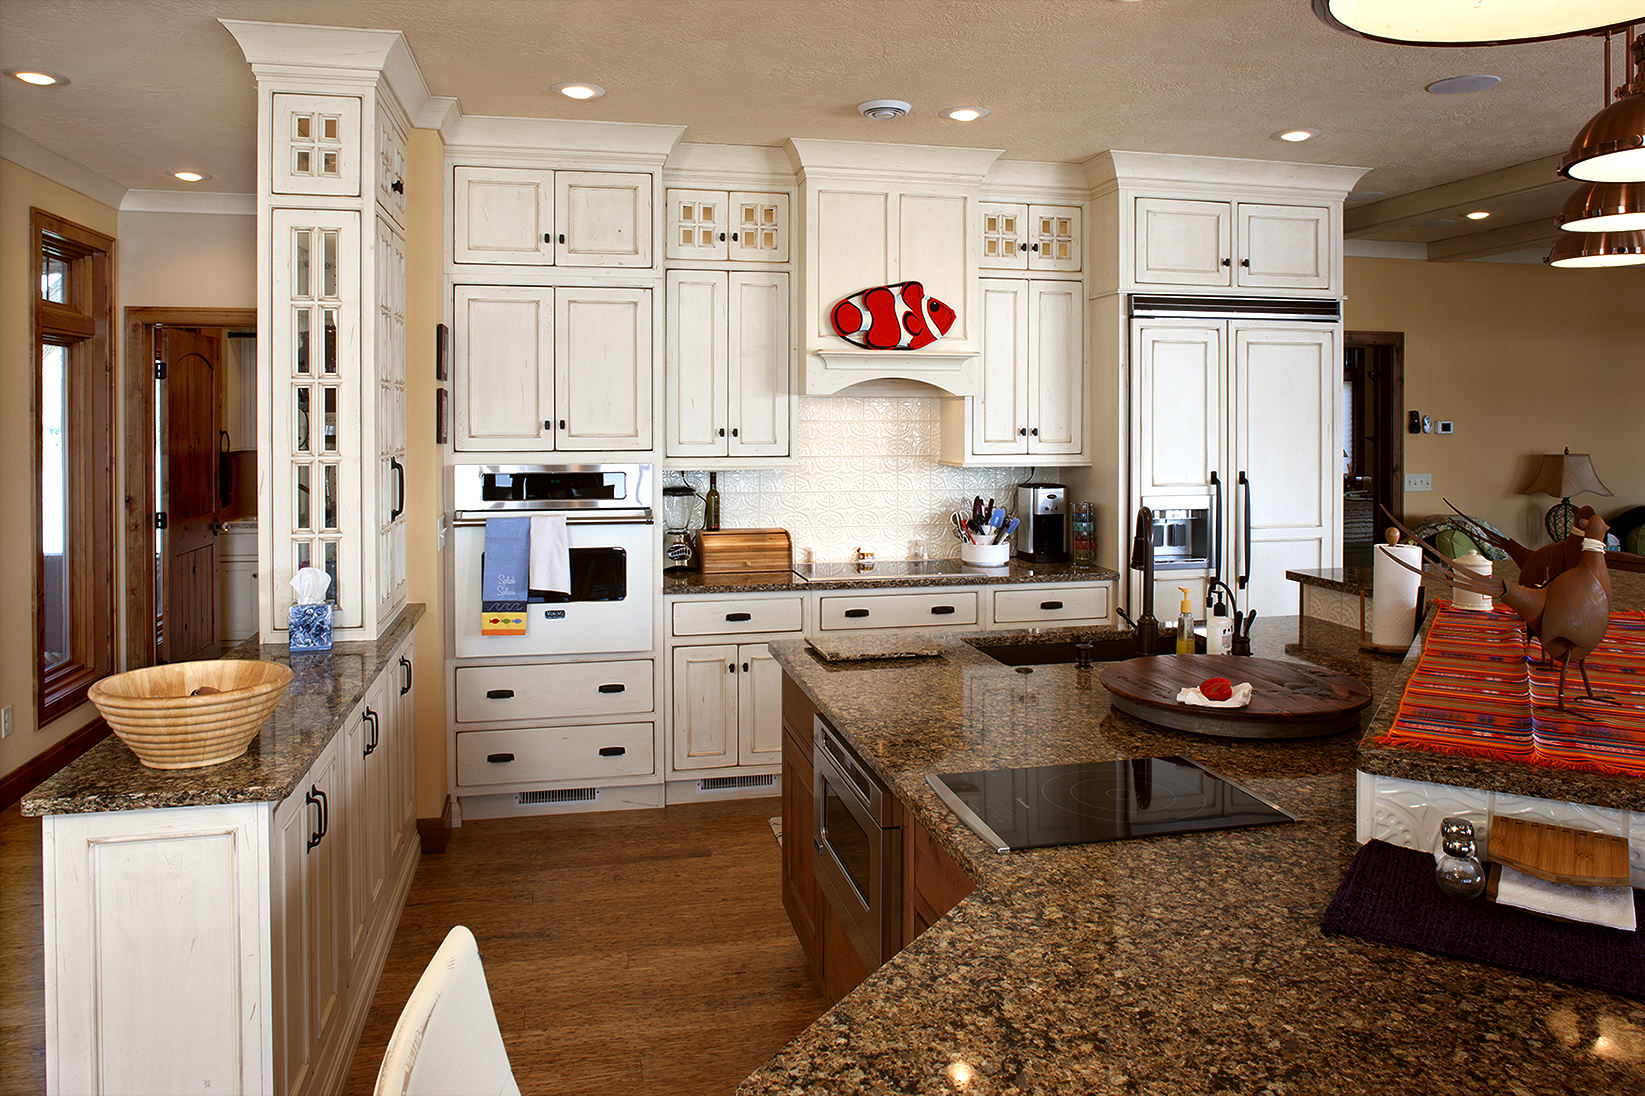 See this nautical kitchen and home | Showplace Cabinetry Kitchen And Bath Showplace on palace kitchens, heart themed kitchens, kraftmaid kitchens, woodharbor kitchens, cambria kitchens, aristokraft kitchens, dura supreme kitchens, decora kitchens, signature kitchens, homecrest kitchens, unfitted kitchens, playhouse kitchens, bertch kitchens, showroom kitchens, raywal kitchens, formica kitchens,